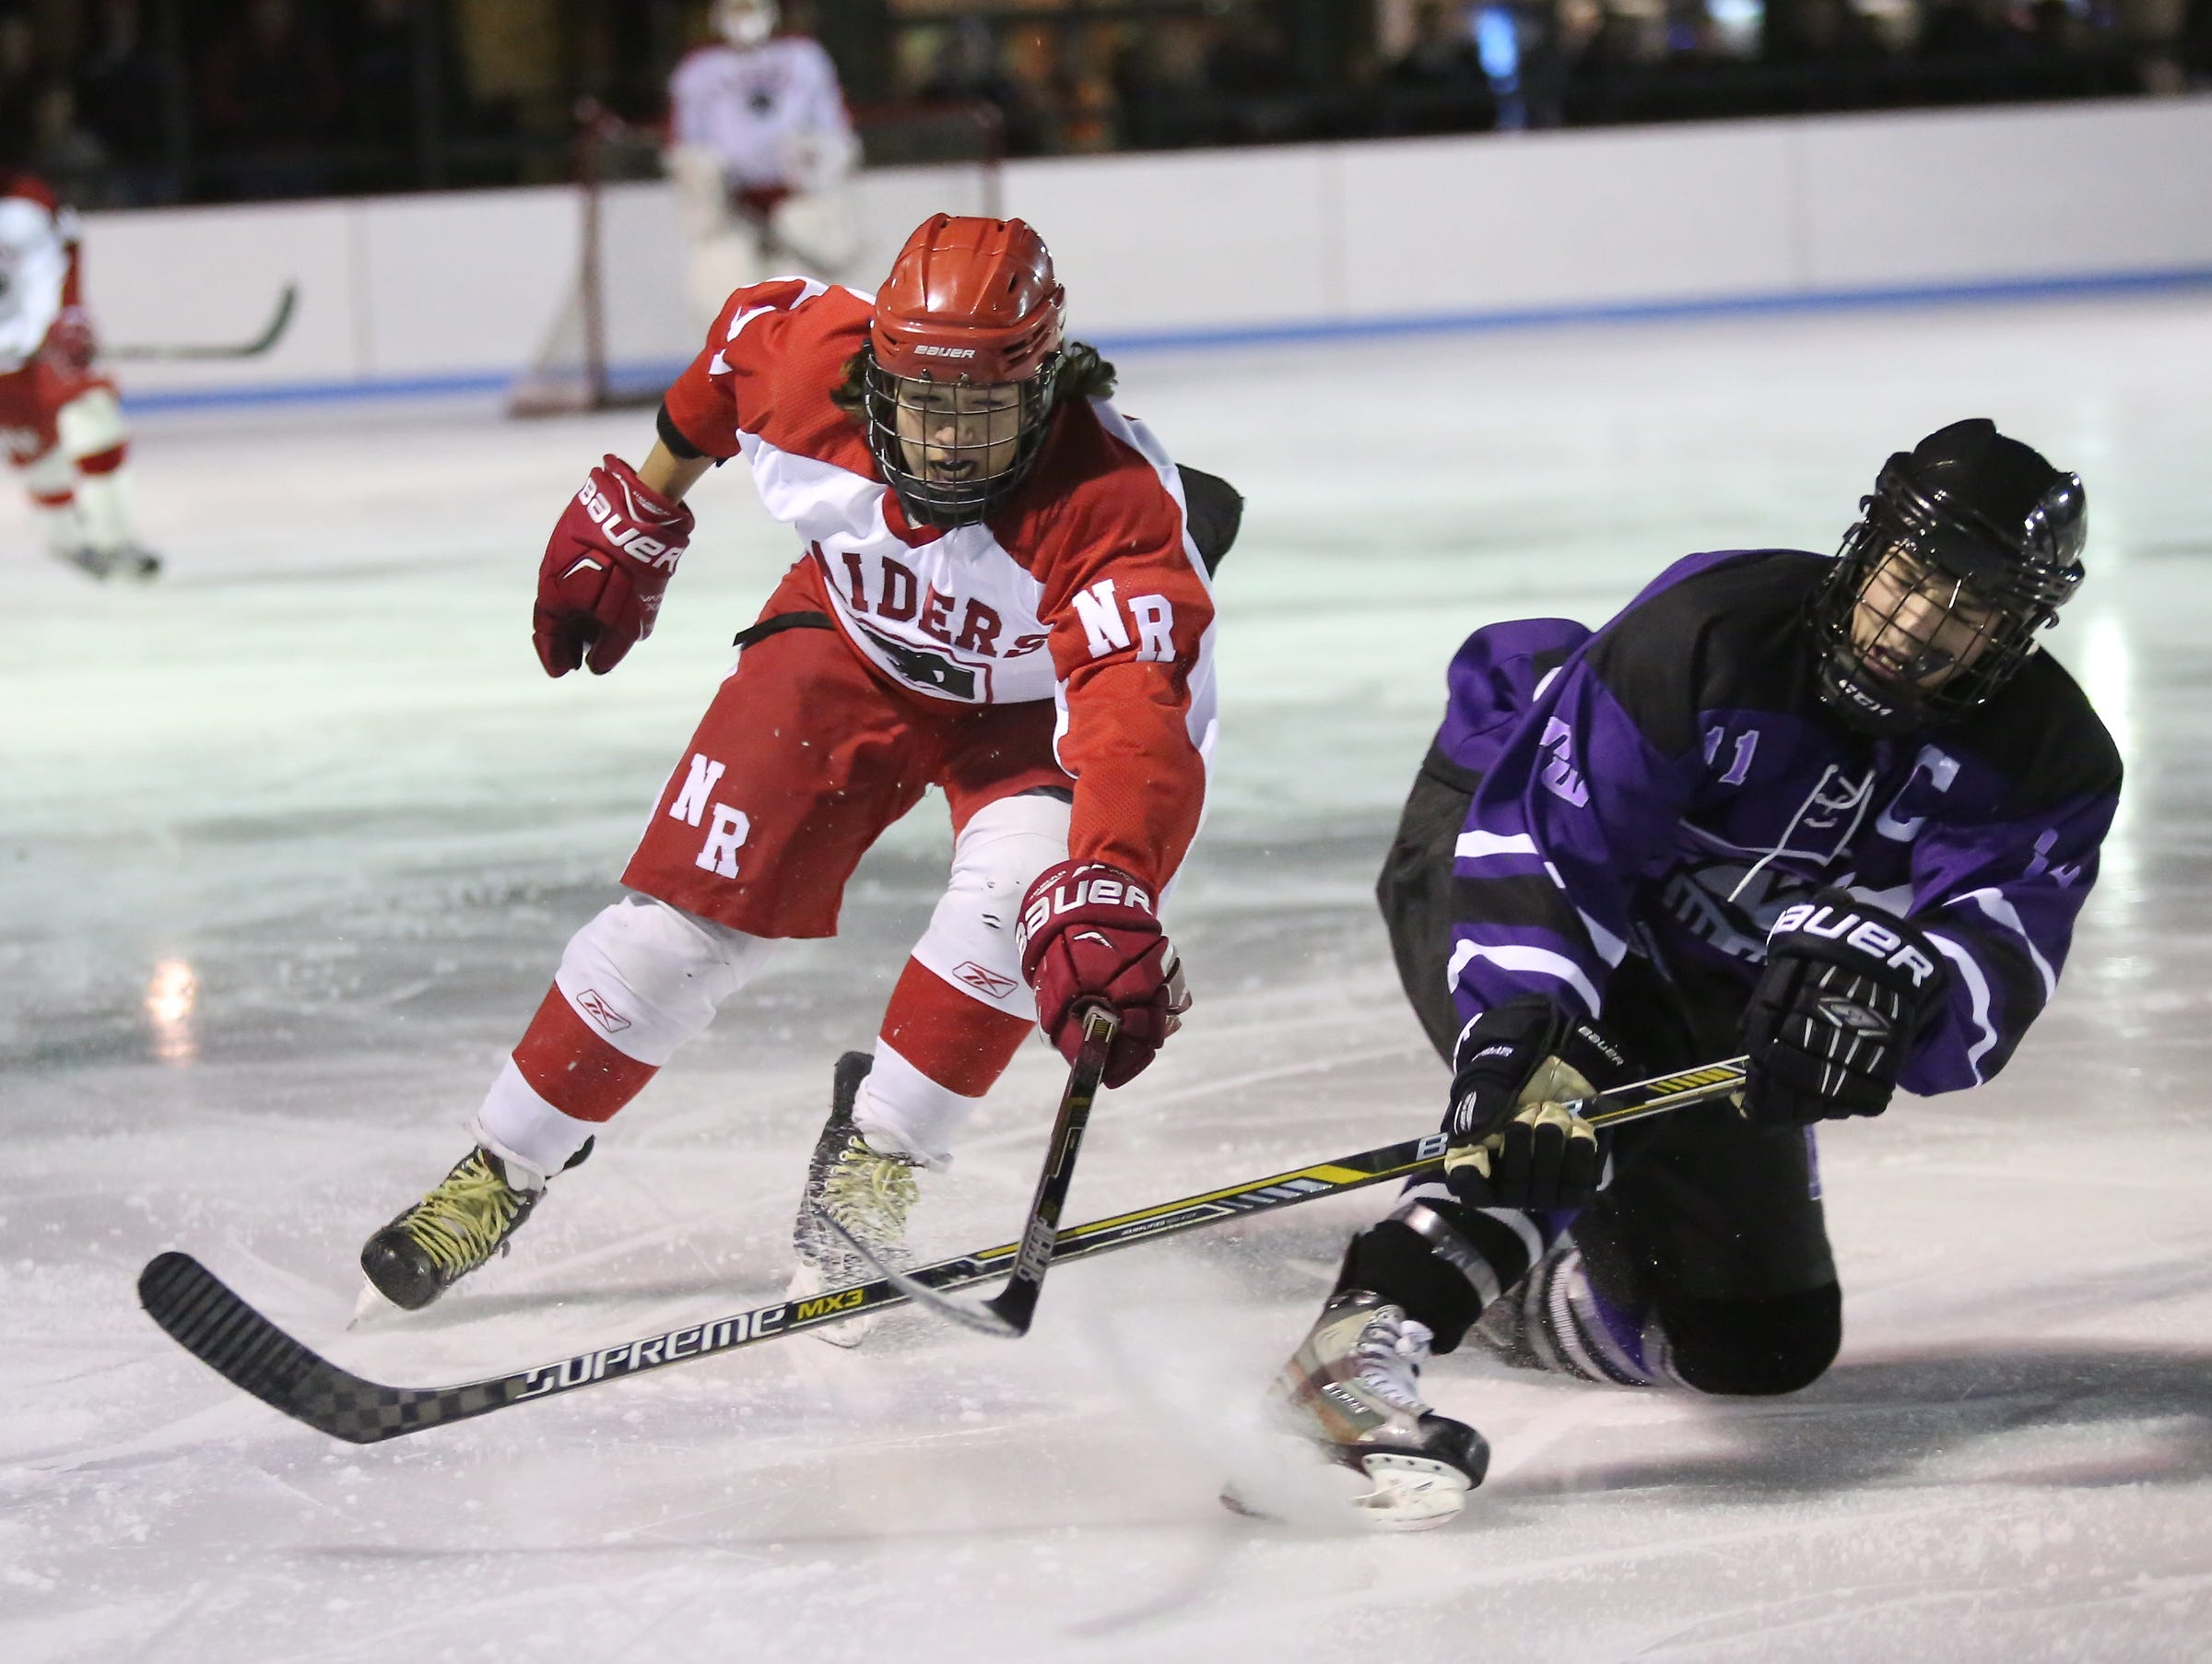 North Roclkland's Jack Guerra (71) reaches for a puck as Monroe-Woodbury defenseman Matt Martin (11) defends during the first annual Winter Classic Hockey Tournament at the Bear Mountain Ice Rink in Tompkins Cove on Friday, Dec. 18, 2015.